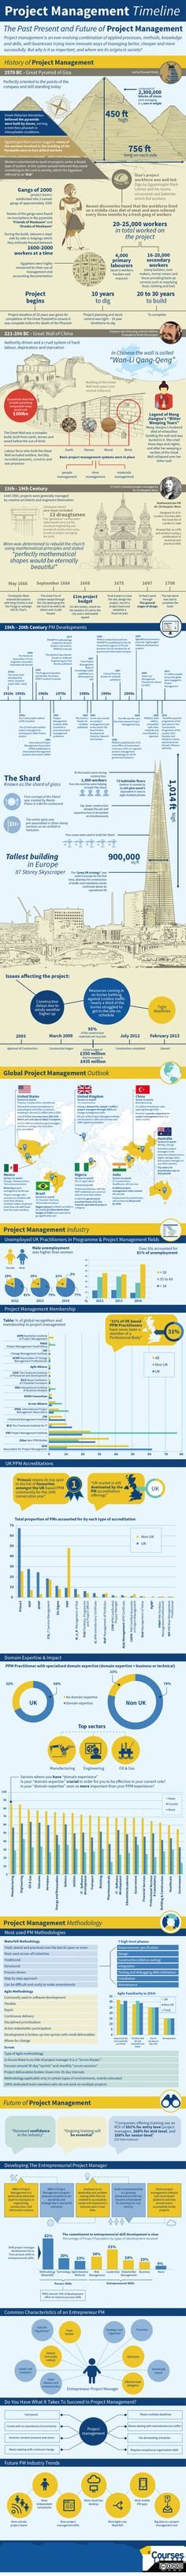 Project Management Timeline — The past, present, and future of project management (infographic)